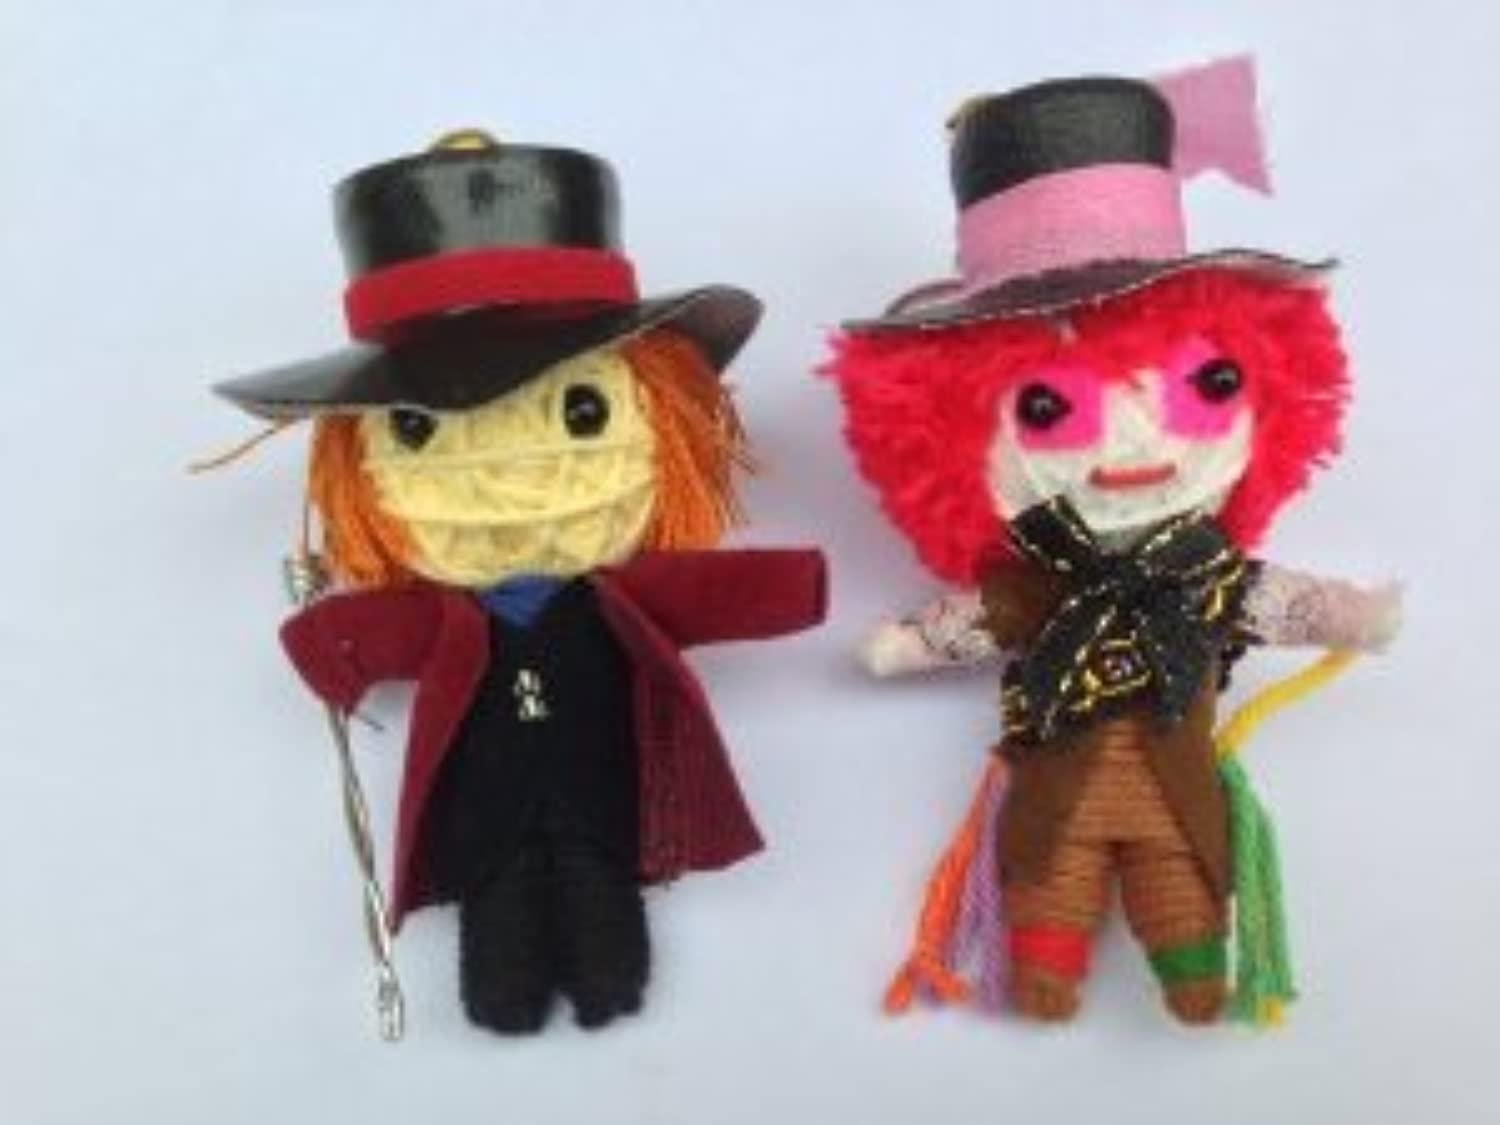 String Doll World - String Doll Keychain - Willy Wonka & The Mad Hatter ドール 人形 フィギュア(並行輸入)